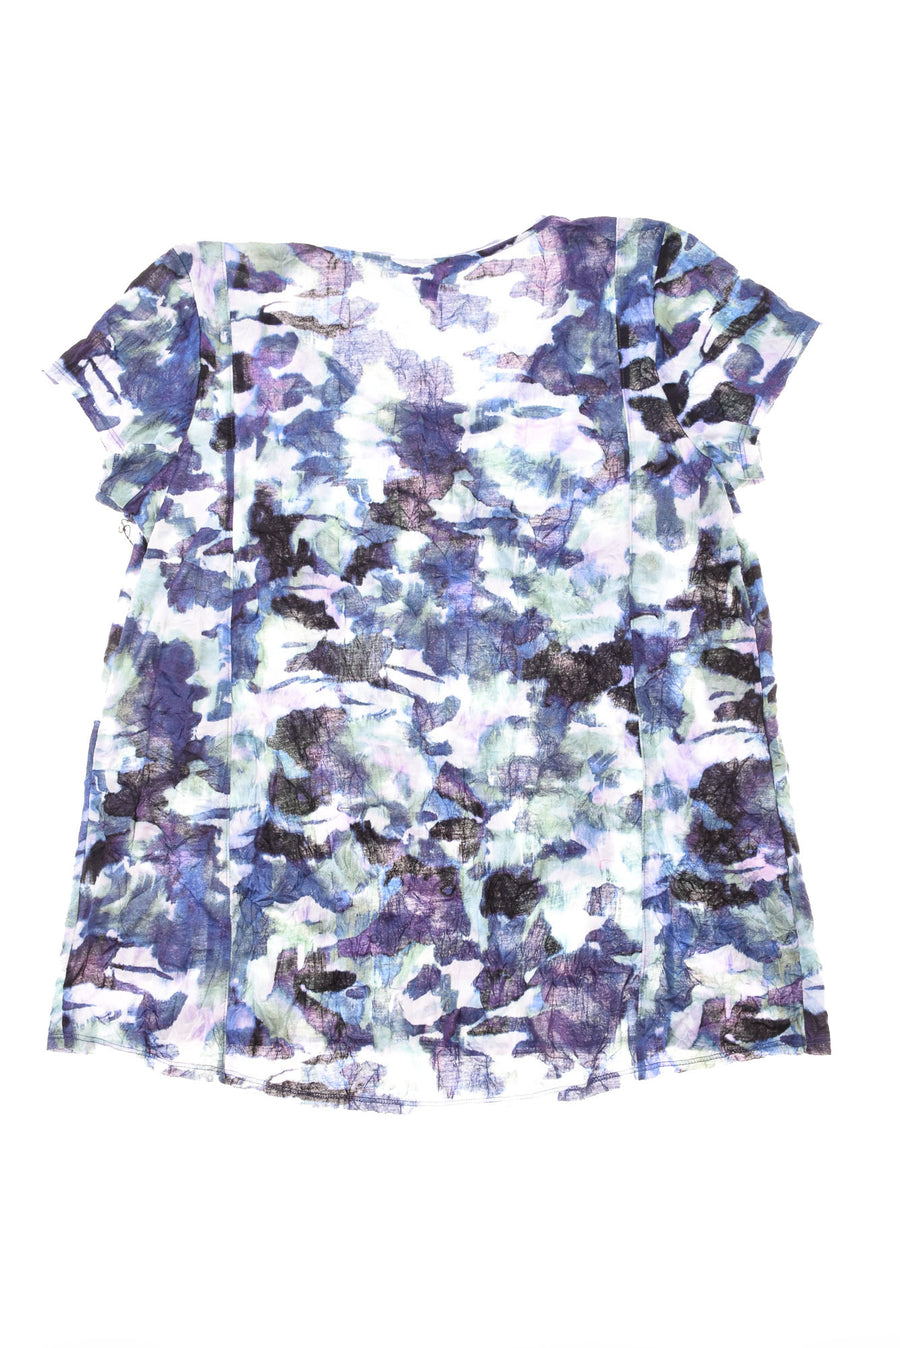 Women's Top By Simply Vera